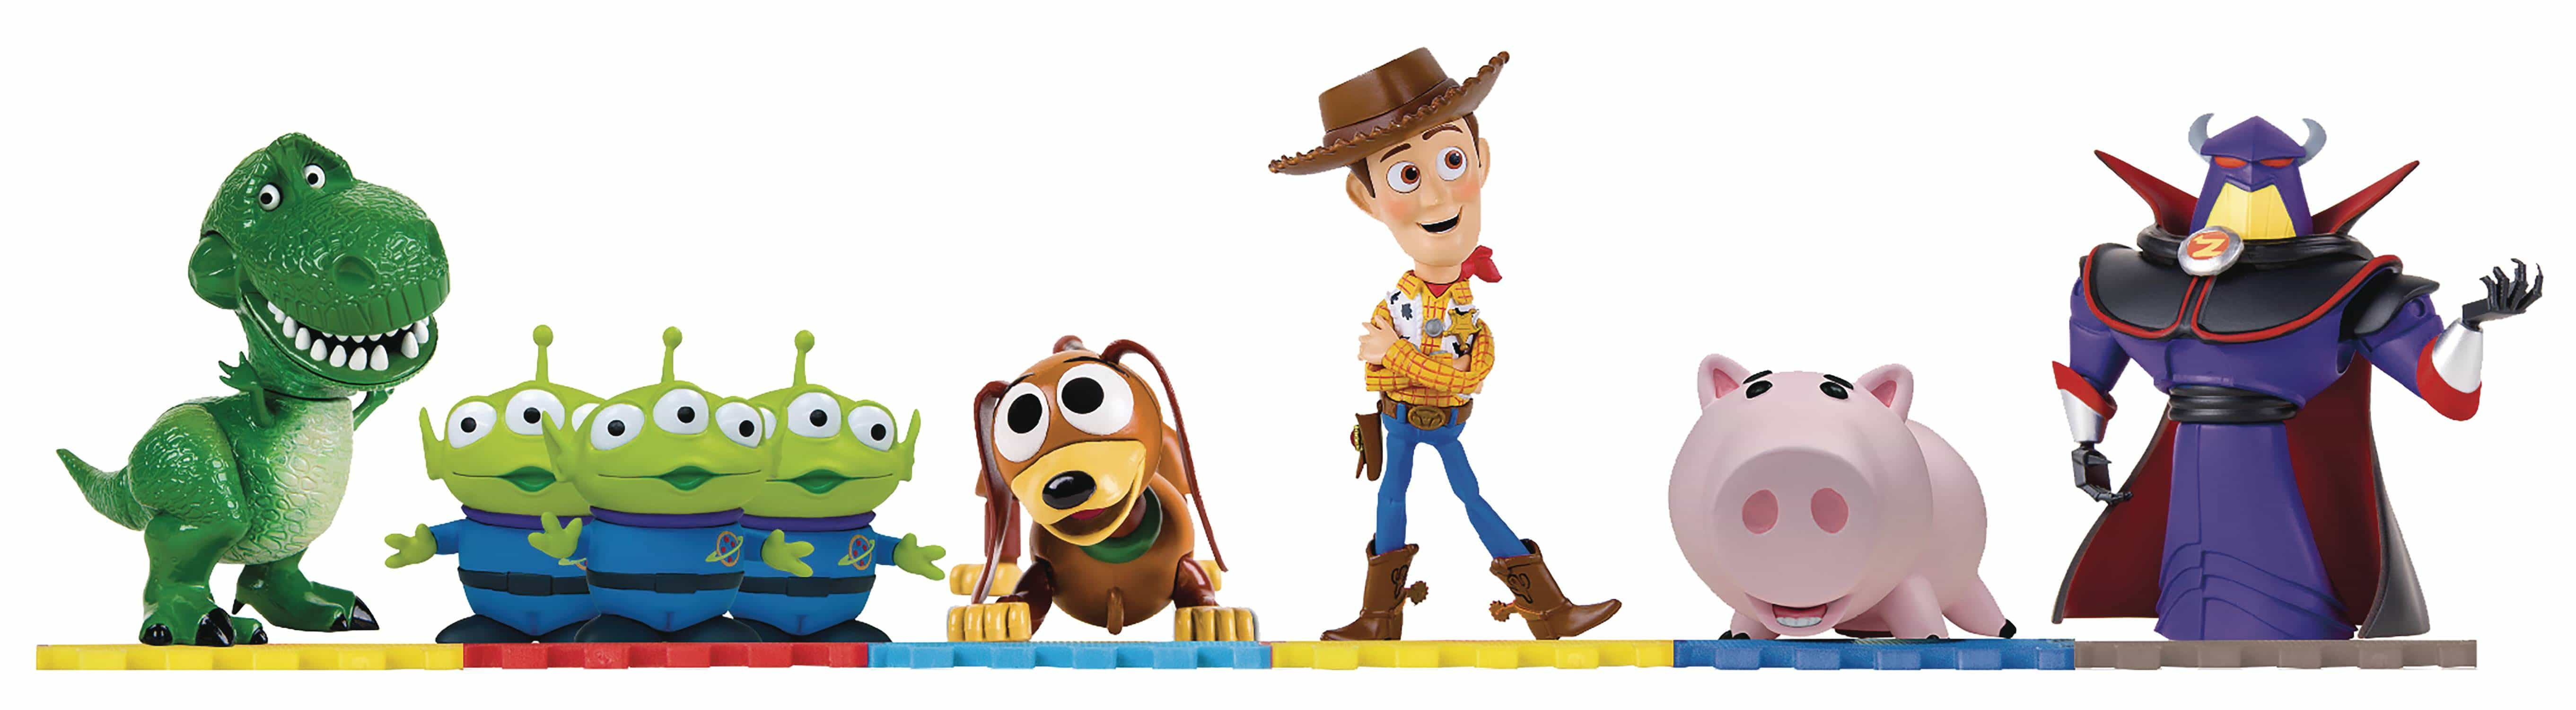 New Px Toy Story Mini Figures Coming Soon Diskingdom